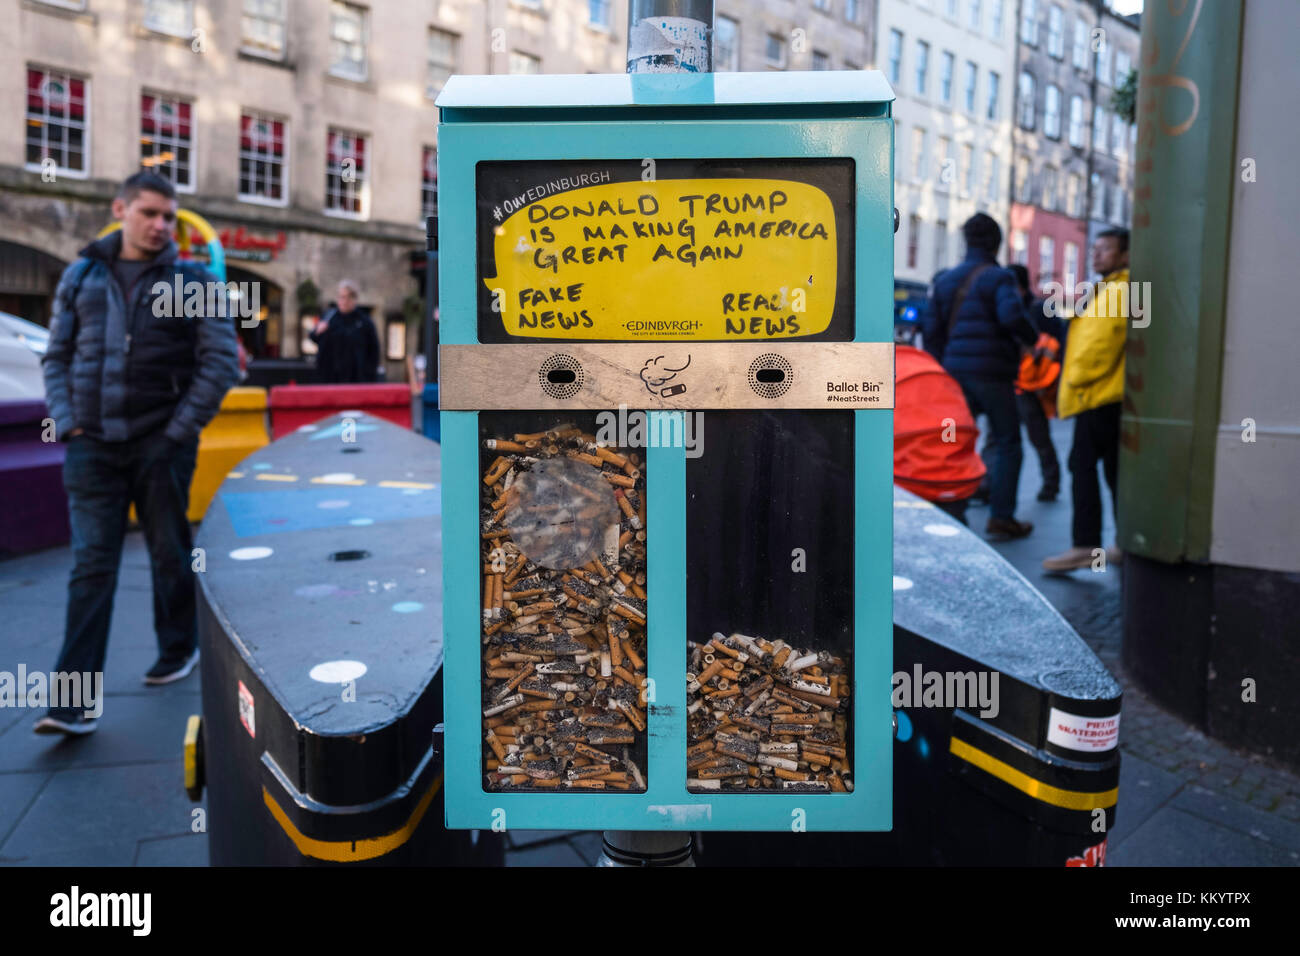 Ballot Bin using cigarette butts/ends to allow voting on street on Royal Mile in Edinburgh, Scotland, United Kingdom - Stock Image